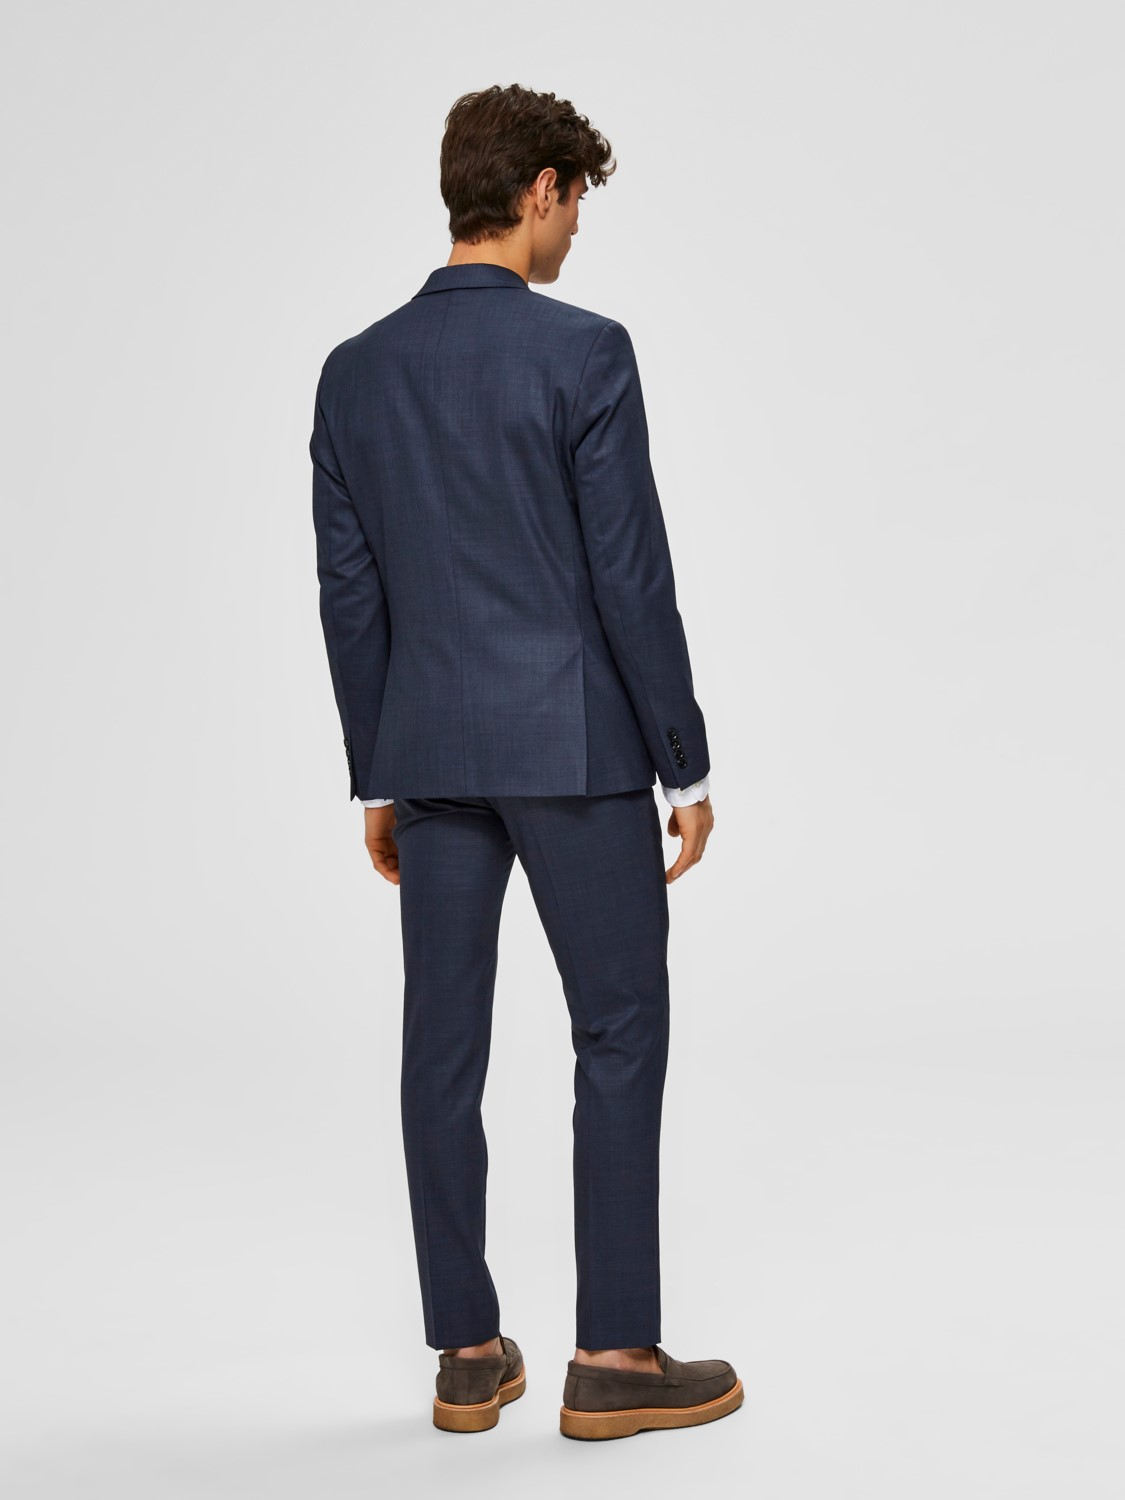 Selected Blazer - Slhslim Flex Dark Blue